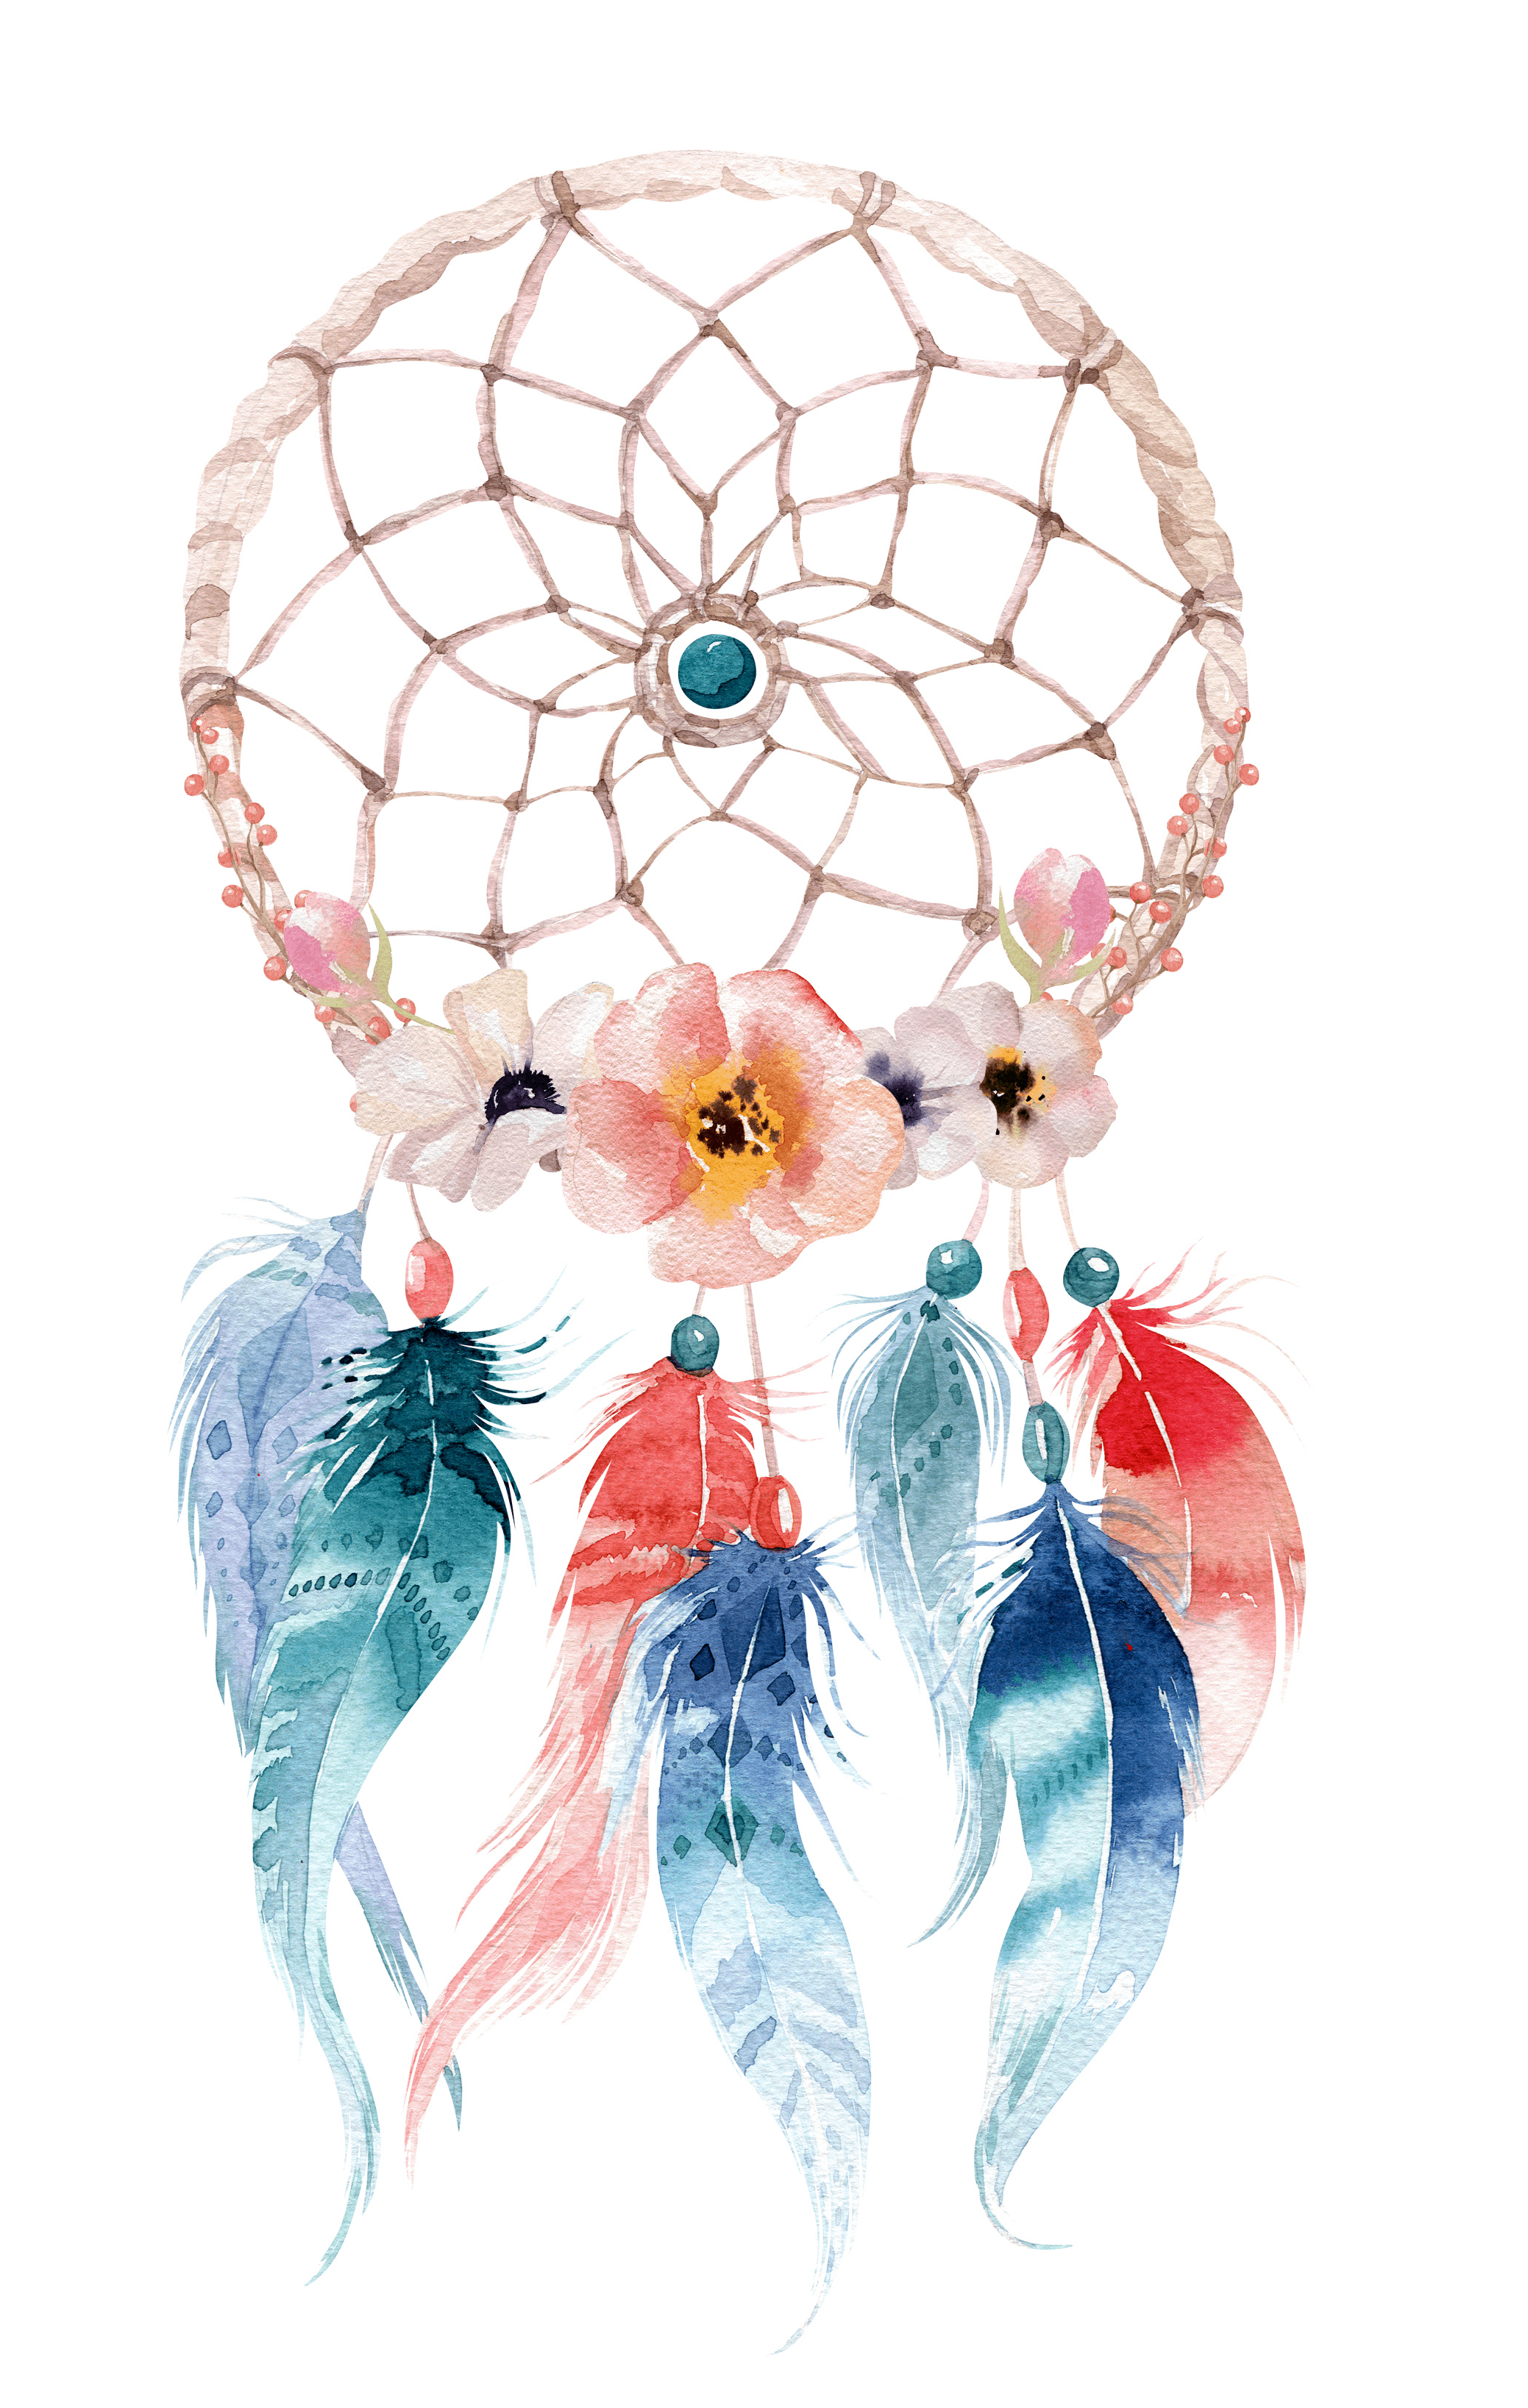 Dream catcher, Protection Symbols and Signs Collection